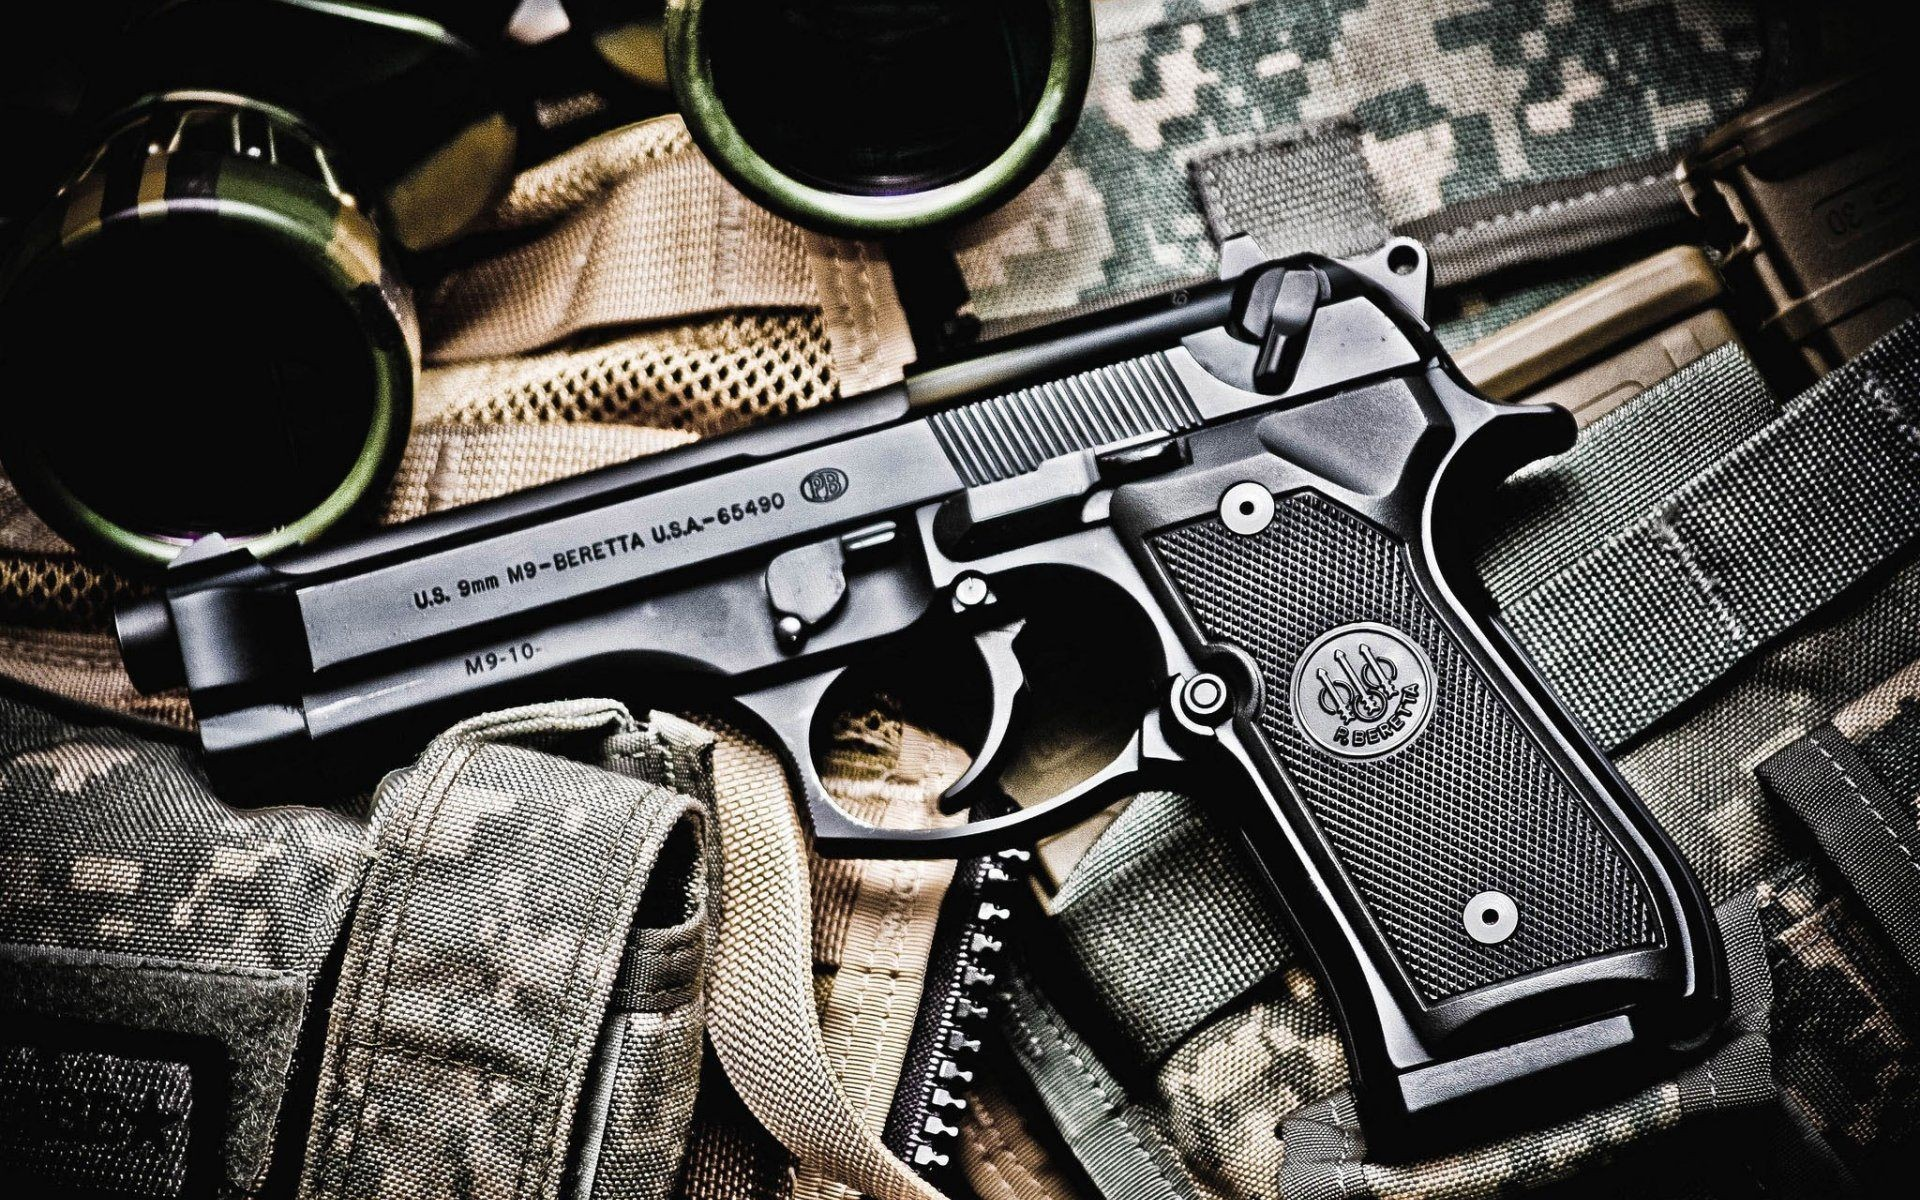 55+ gun wallpapers ·① download free high resolution wallpapers for